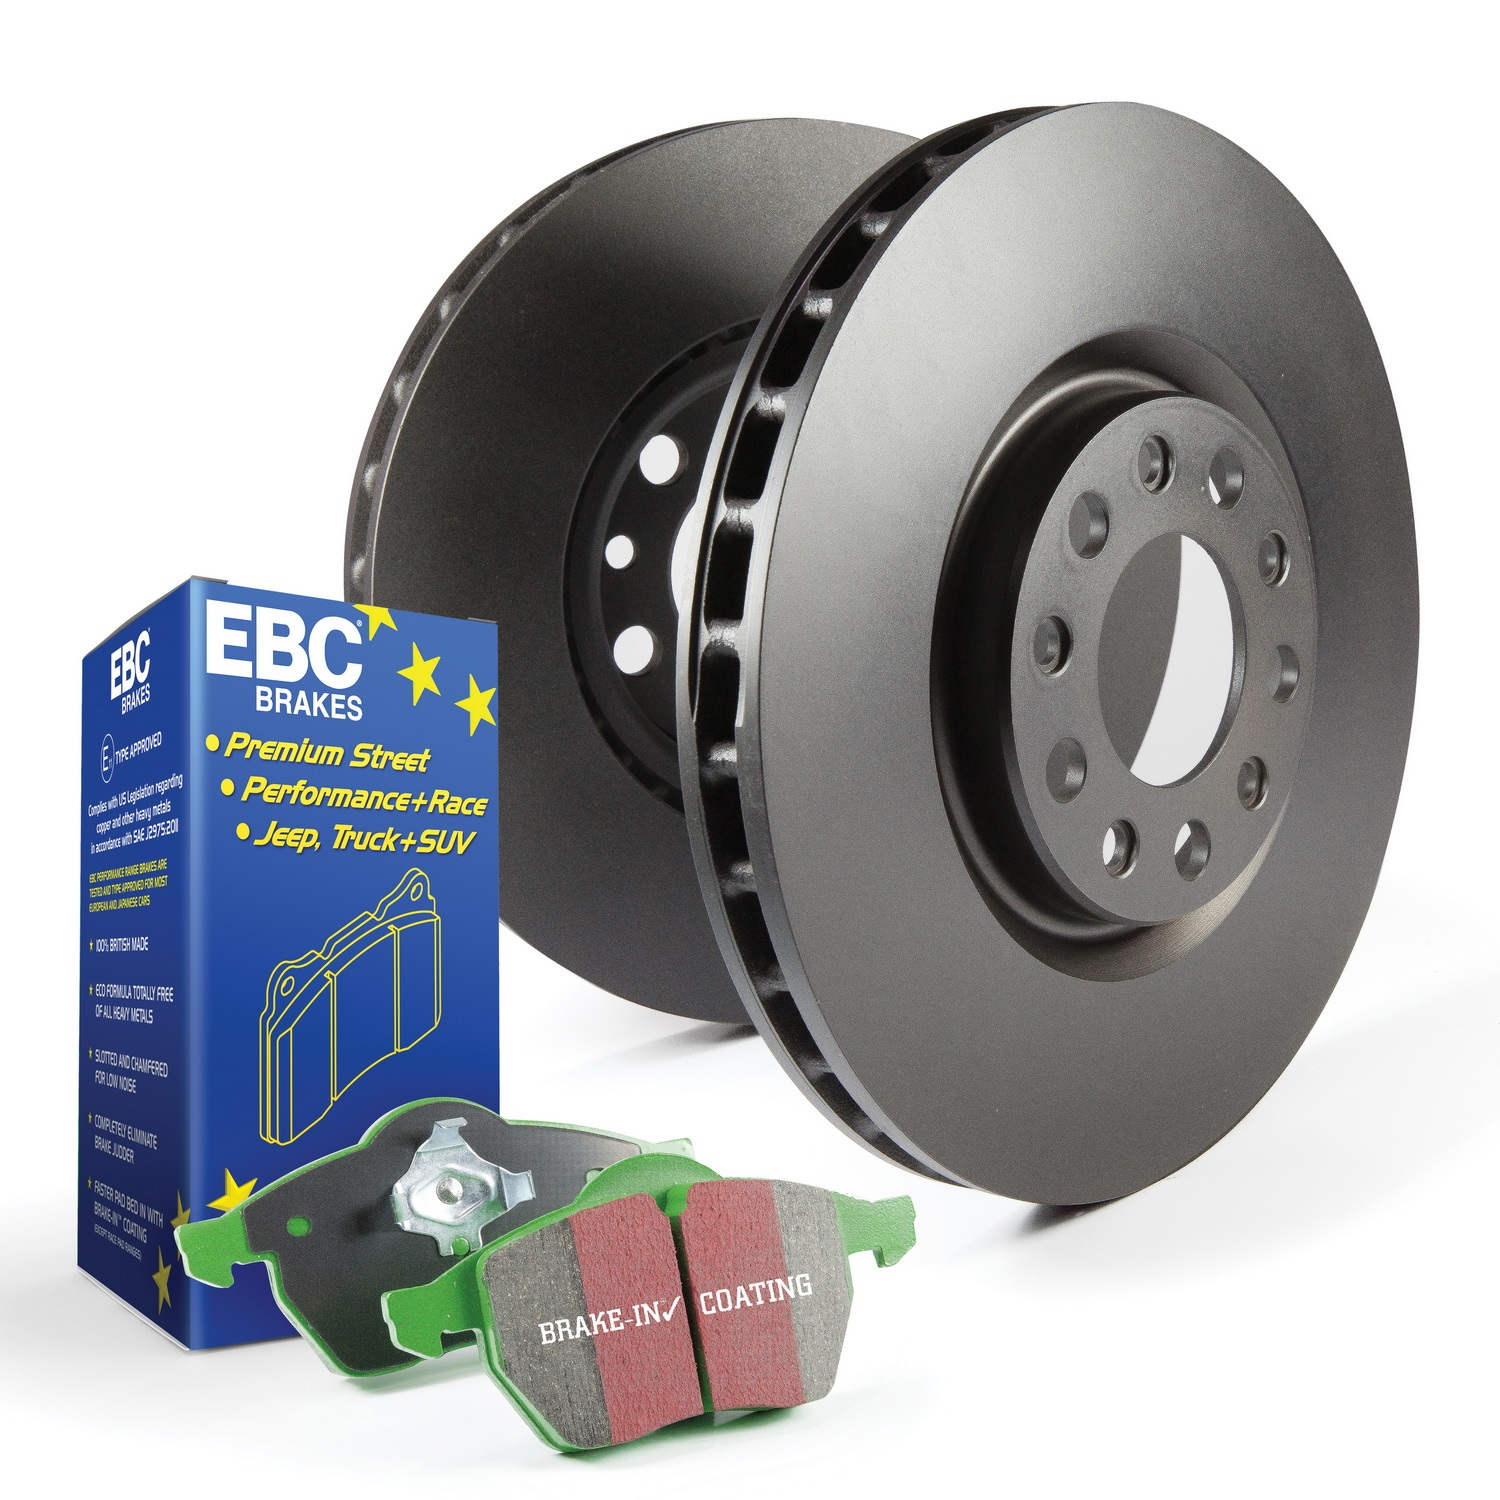 EBC Brakes S14KR1069 S14 Kits Greenstuff and RK Rotors SUV